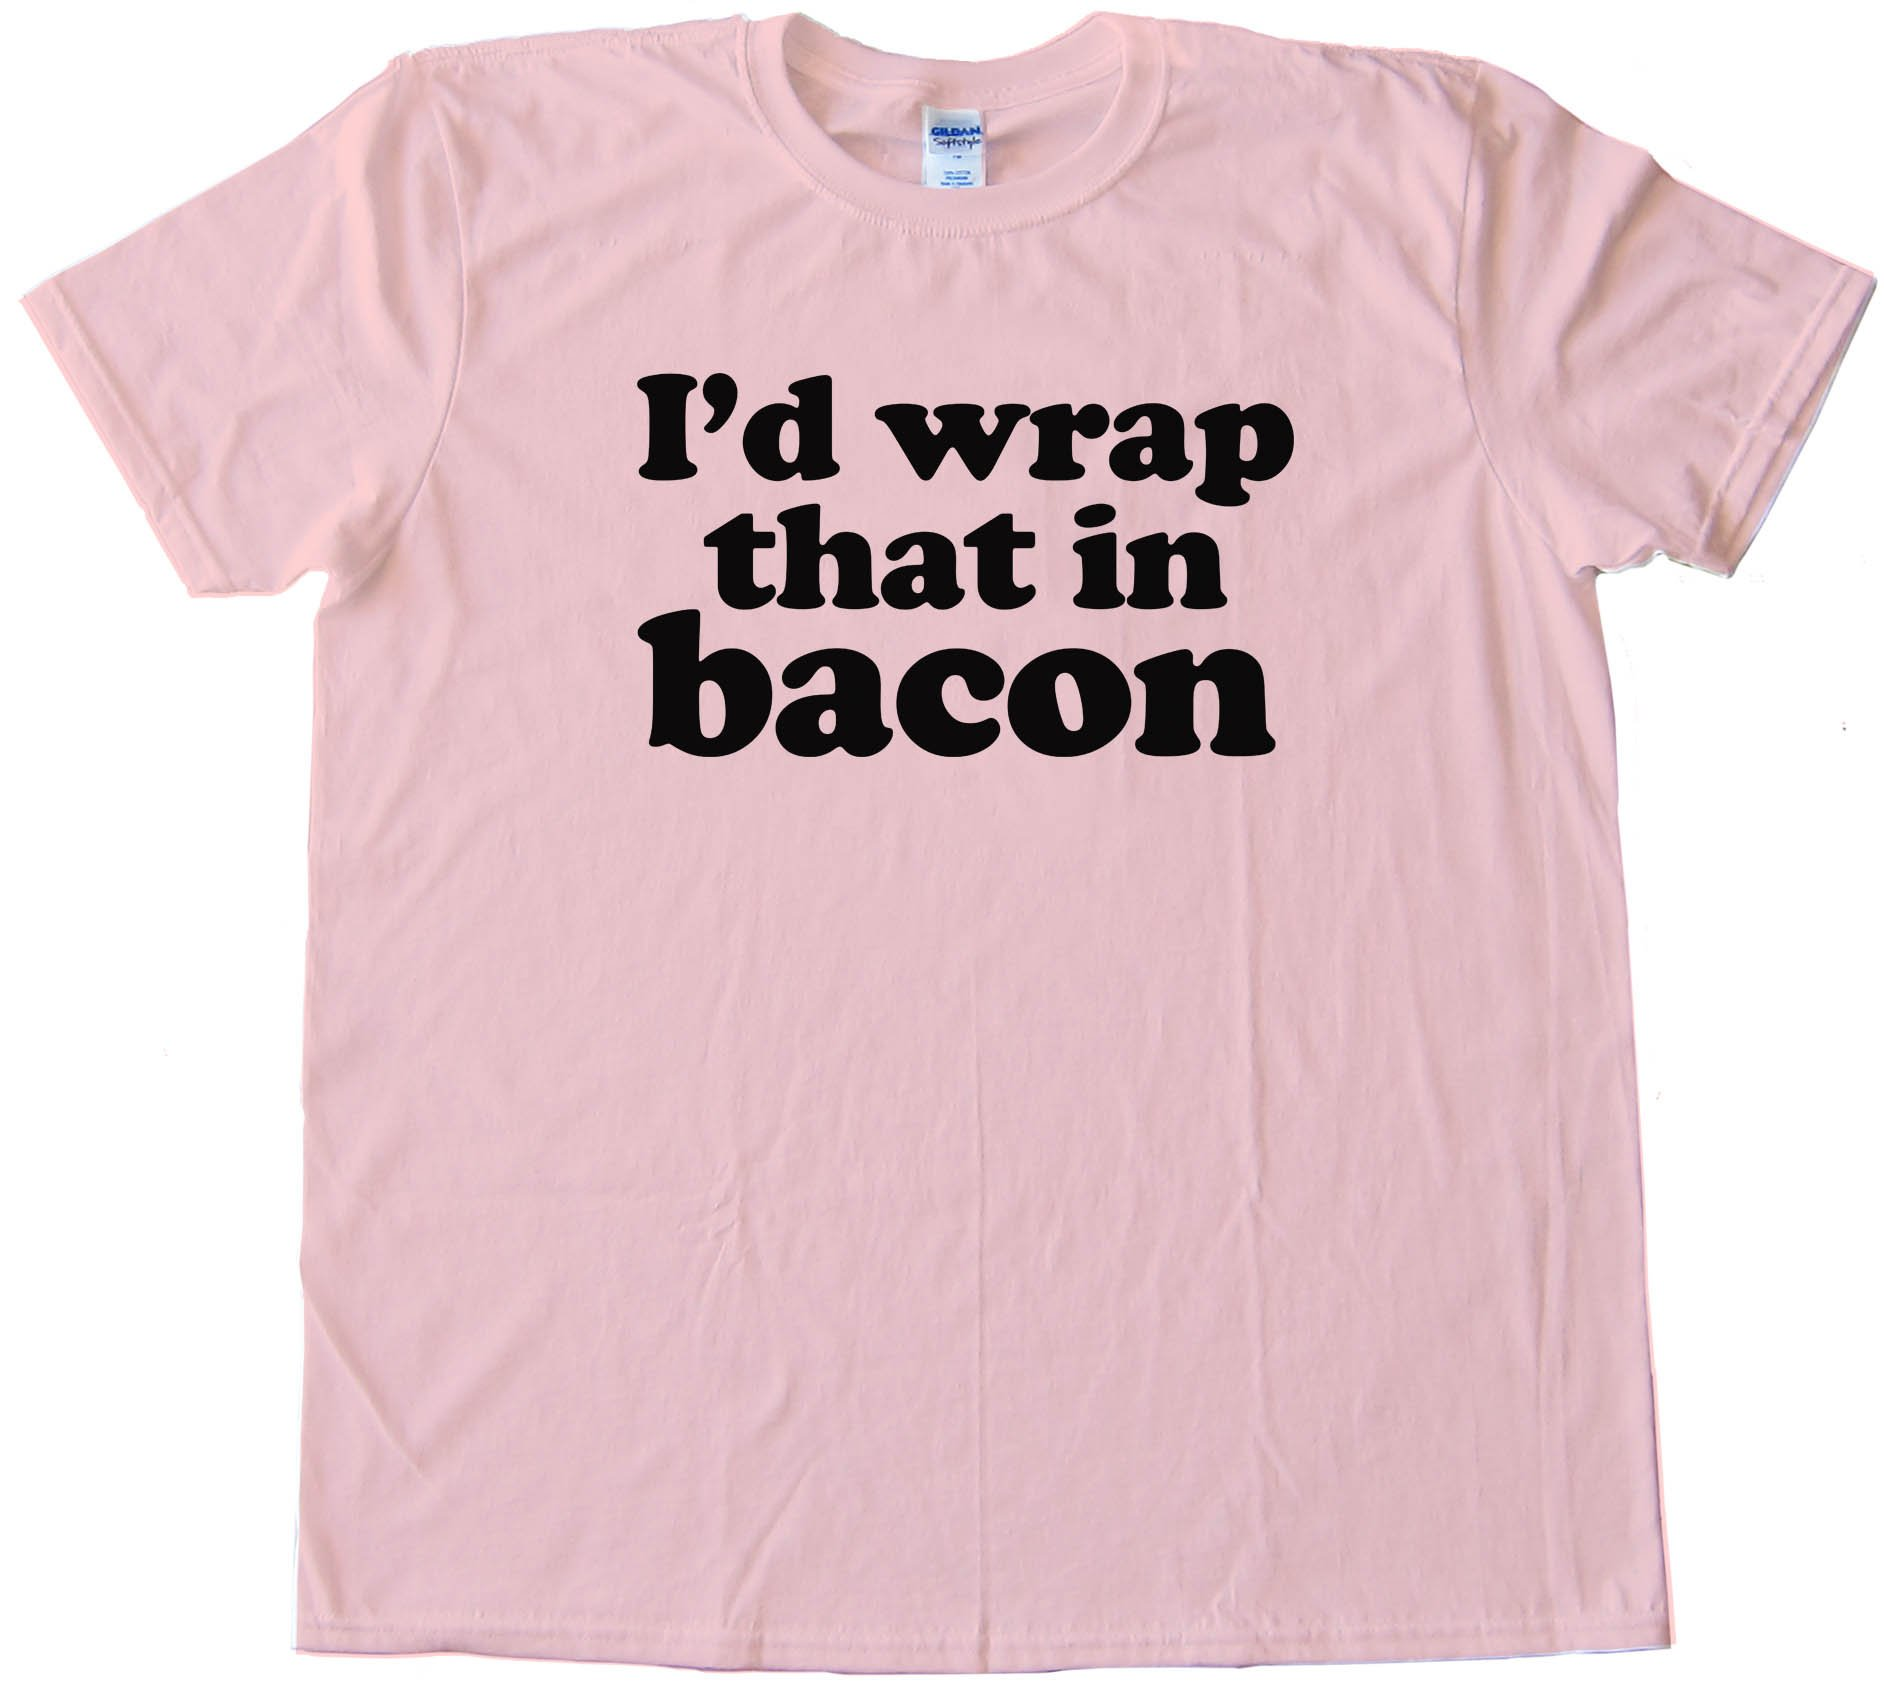 I'D Wrap That In Bacon - Tee Shirt